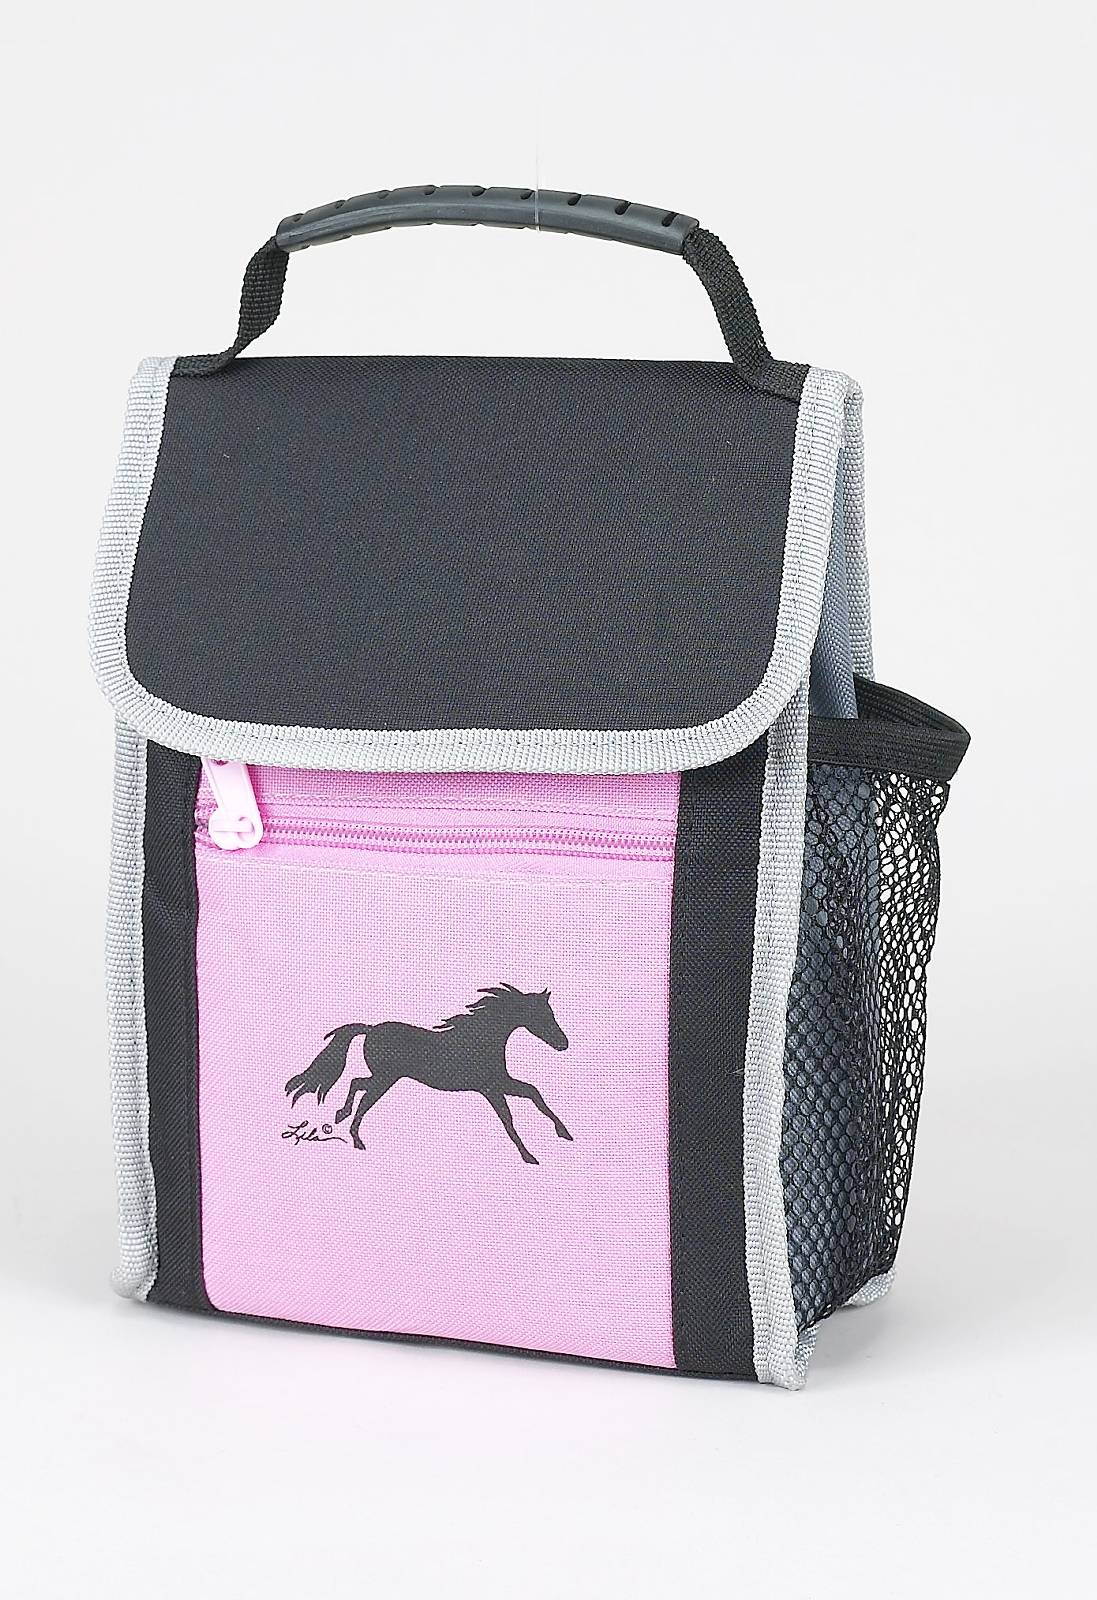 Lila Blakeslee Horse Print Insulated Cooler with Flap-Over hook & loop fastener Closure